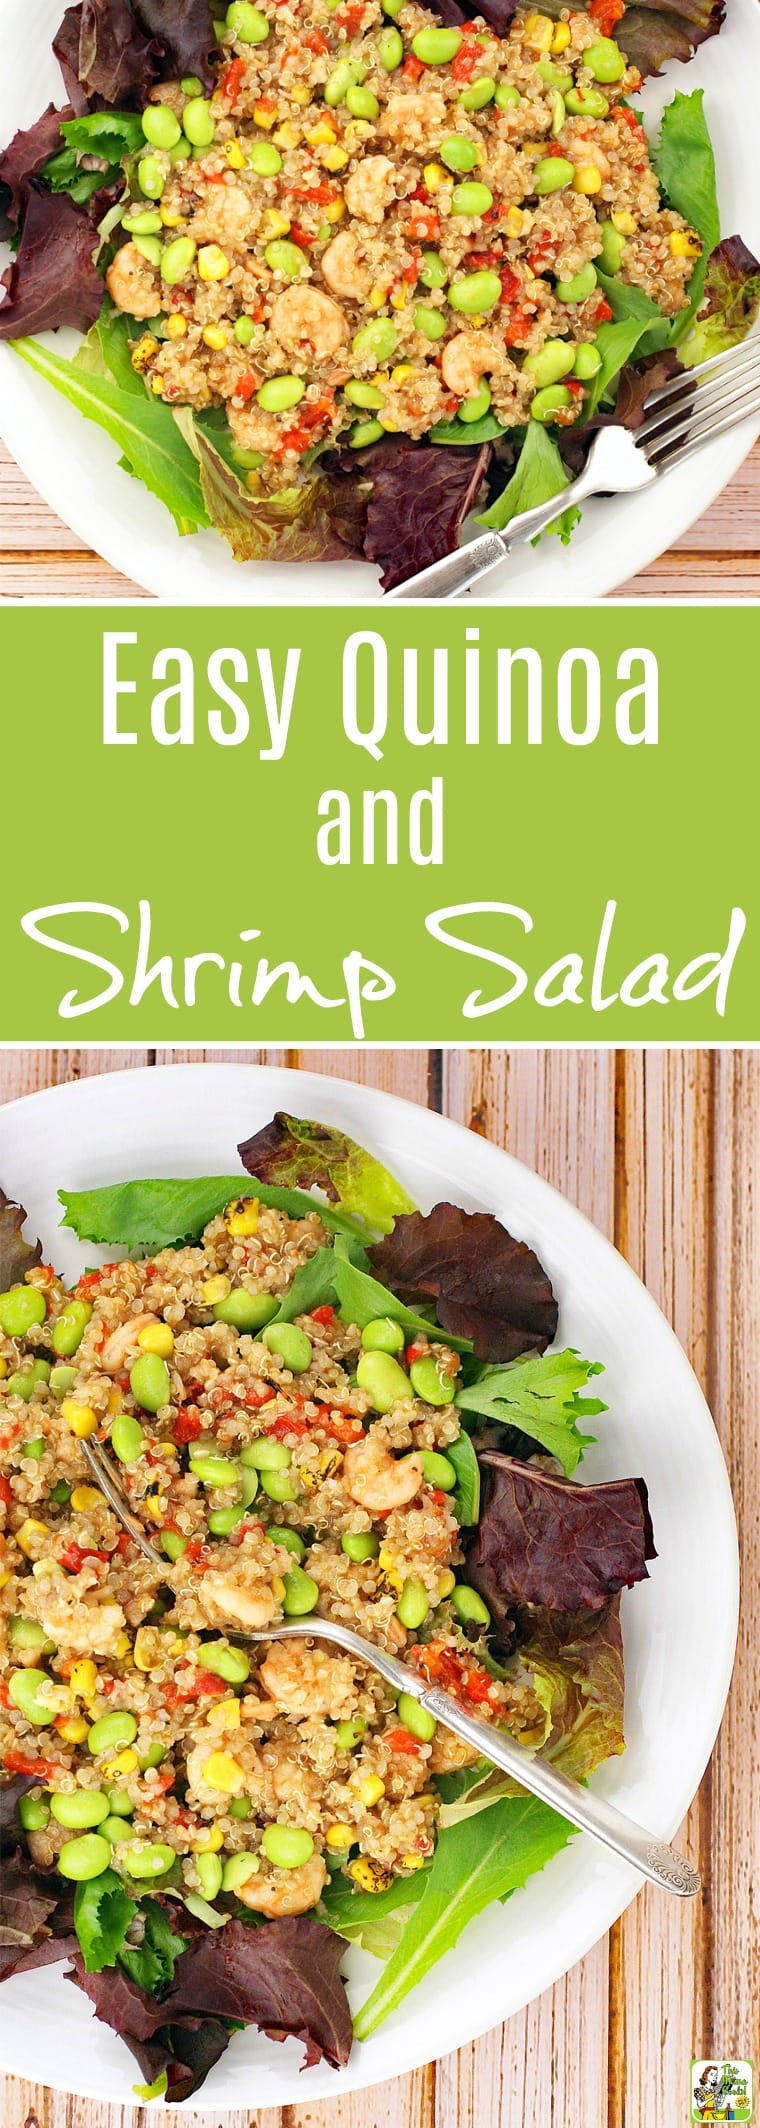 This Easy Quinoa and Shrimp Salad recipe is perfect for busy weeknights. Click to get this healthy, gluten free salad recipe that's packed with protein from shrimp, quinoa and edamame soybeans. Can be made in less than 40 minutes. #salad #glutenfree #quinoa #edamame #shrimpsalad #seafoodsalad #seafood #healthysalad #healthyfood #healthy #protein